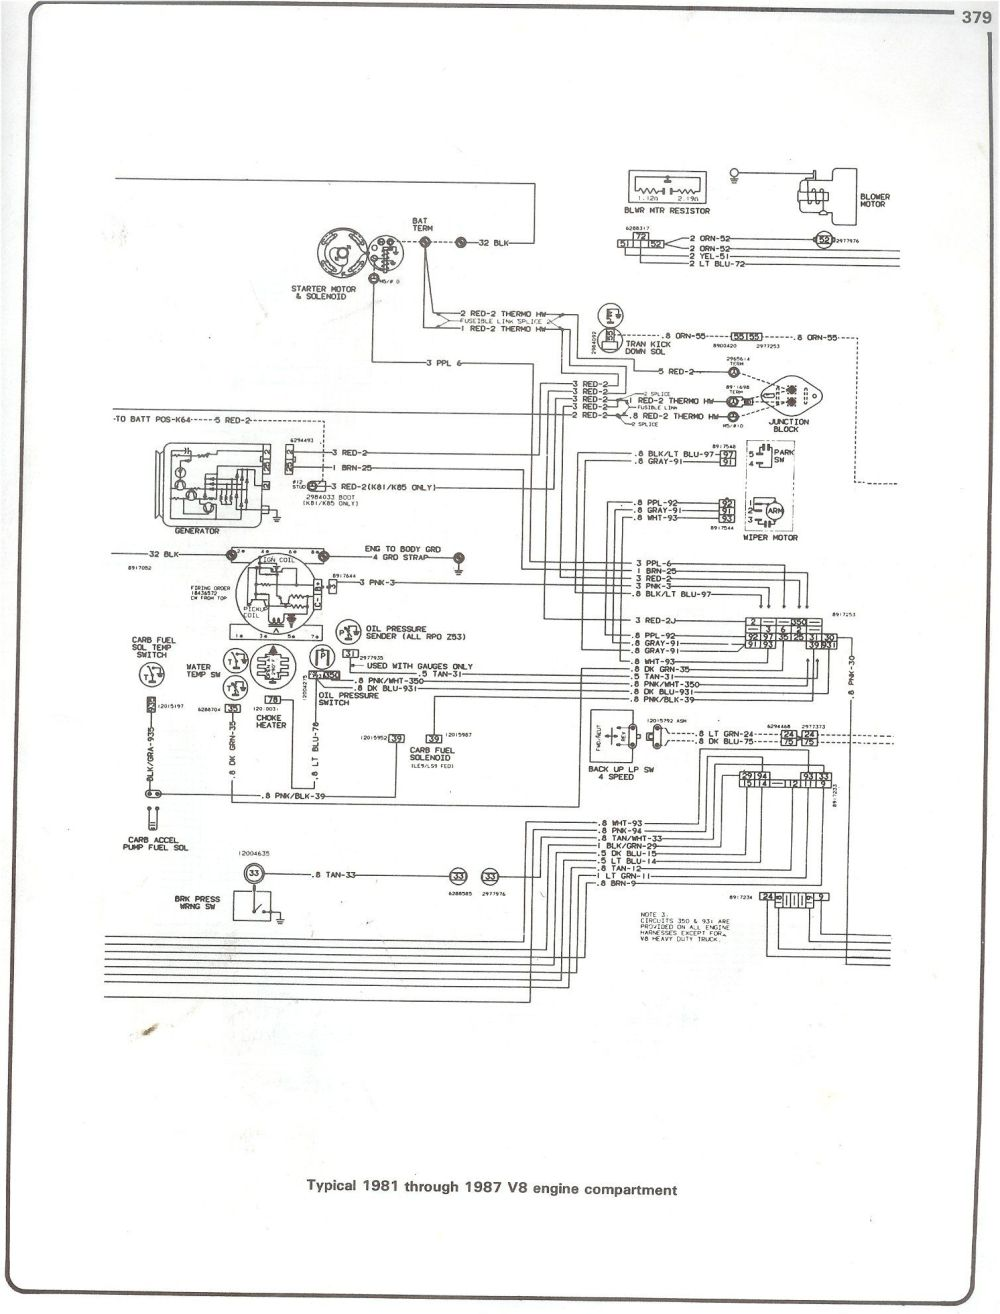 medium resolution of 85 chevy truck wiring diagram www 73 1968 c10 wiring diagram 1971 chevy c10 wiring